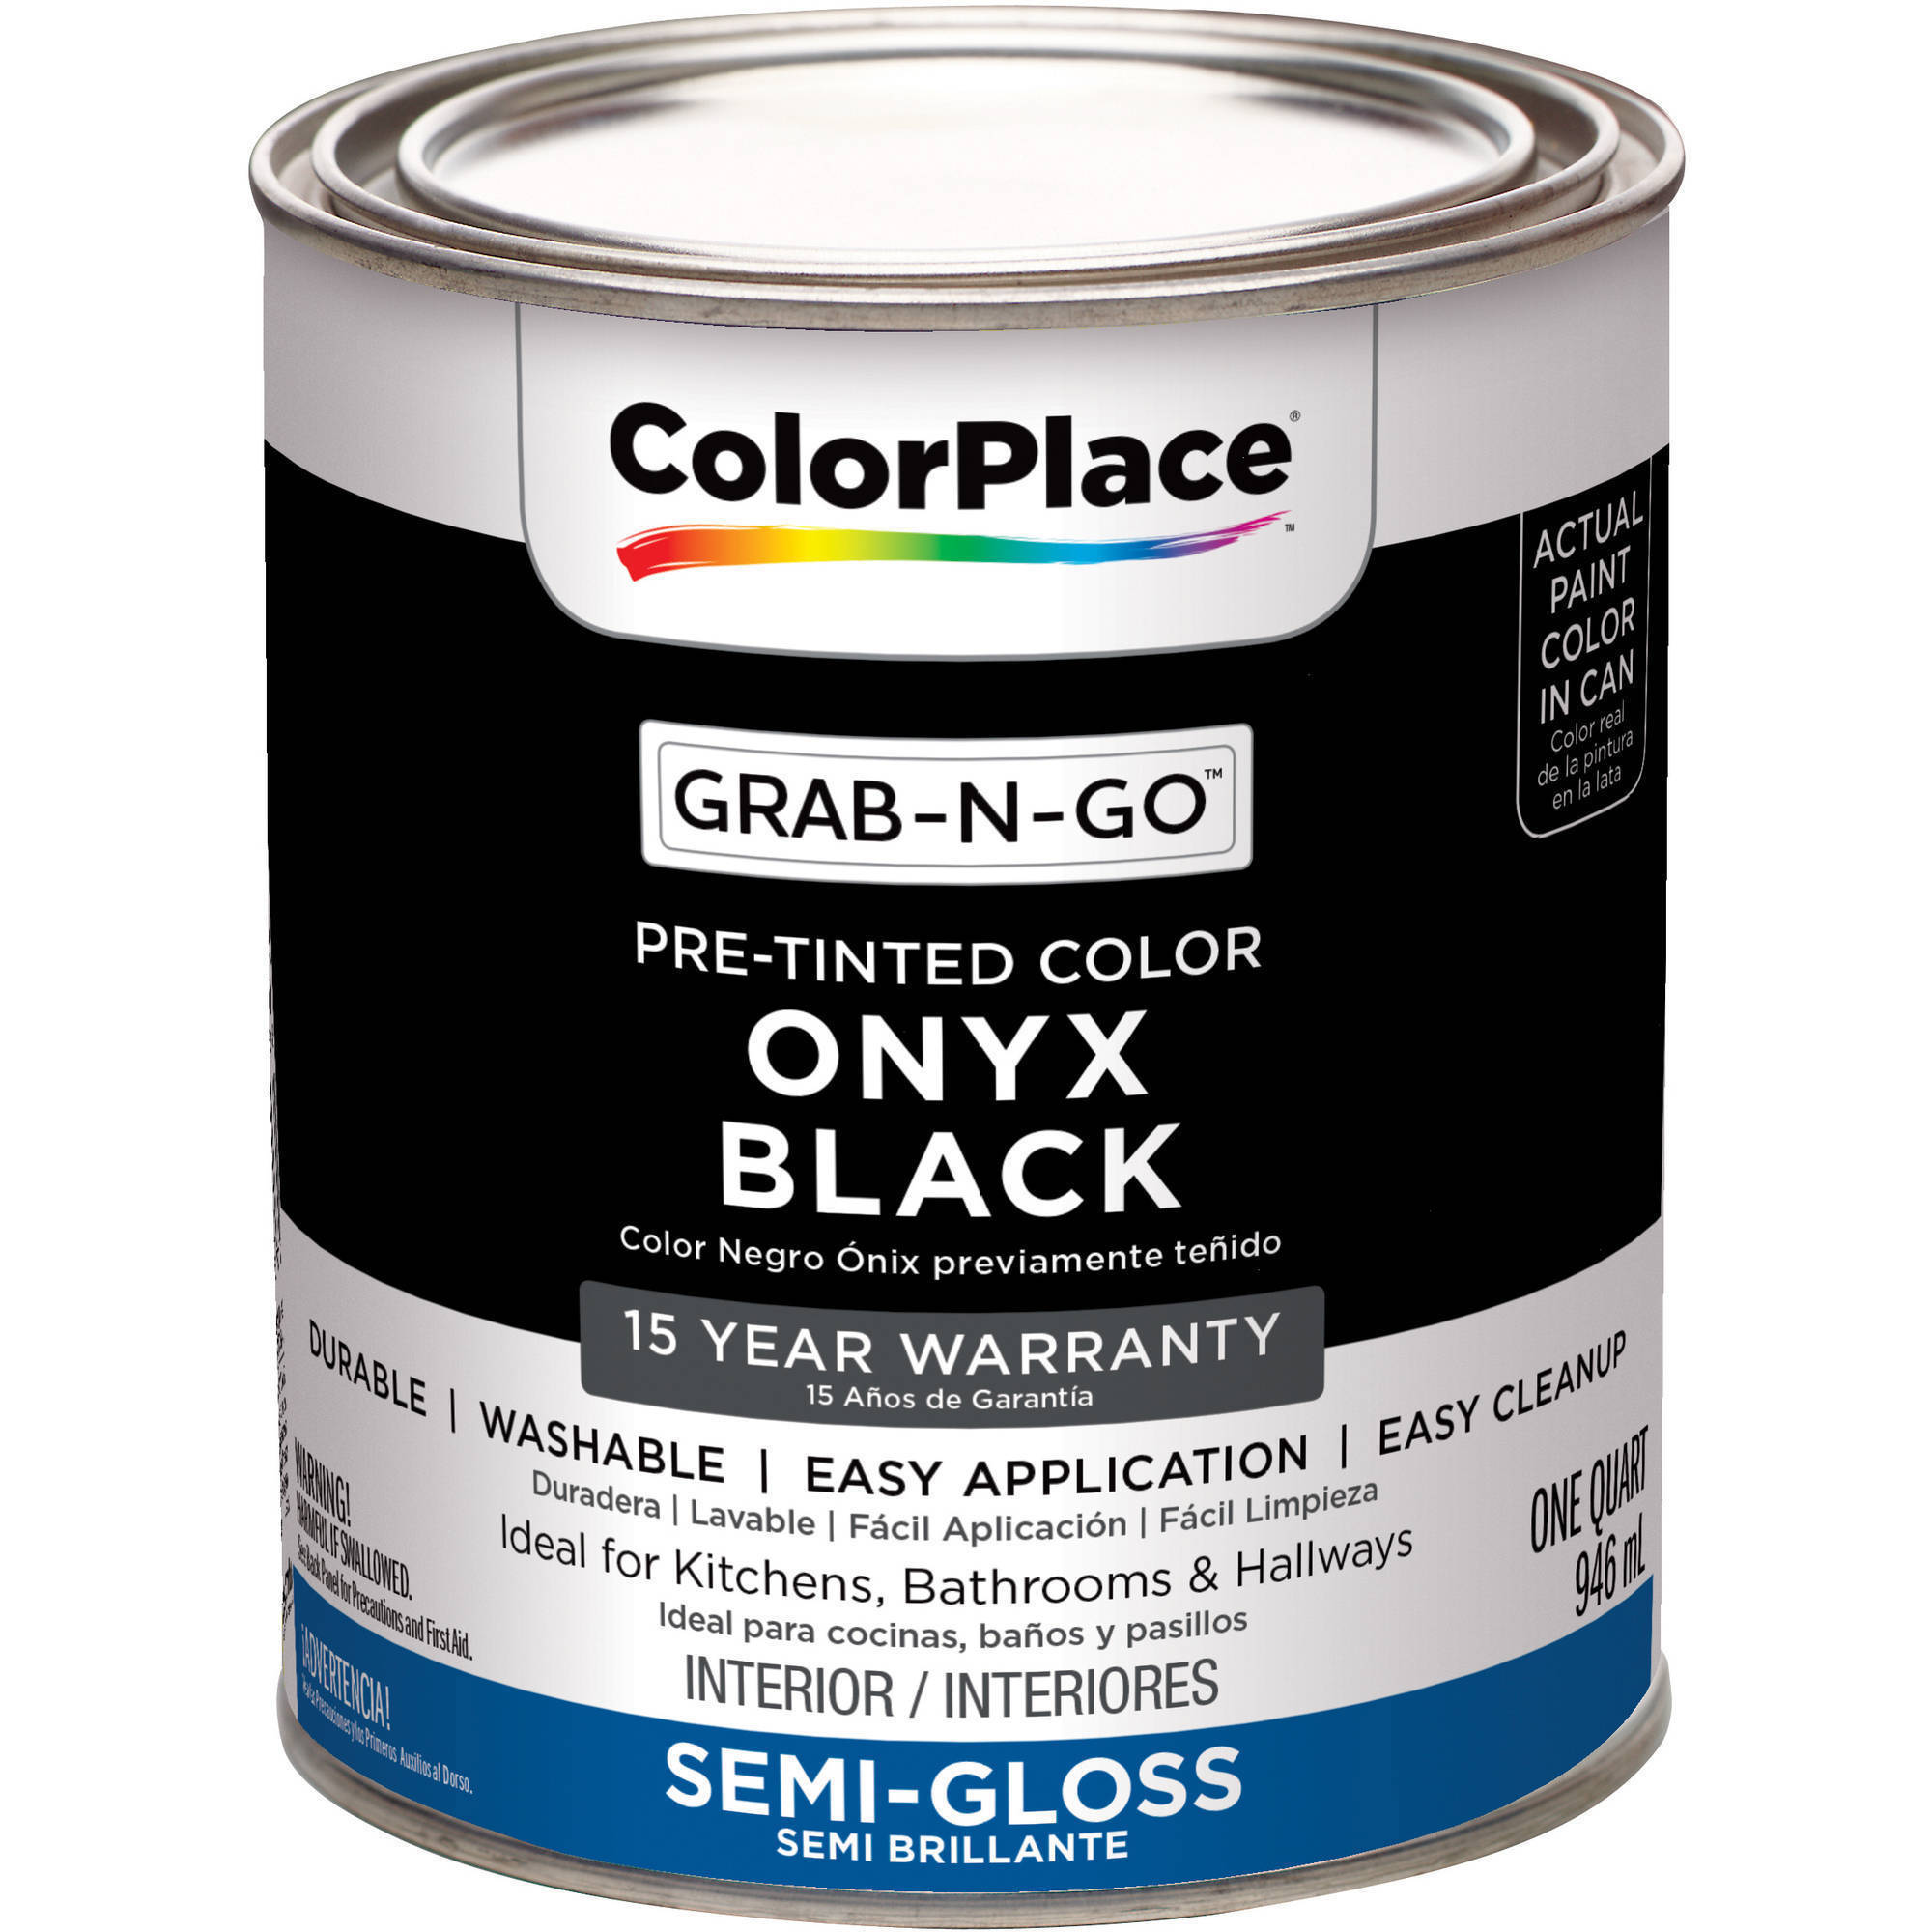 ColorPlace Pre Mixed Ready To Use, Interior Paint, Onyx Black, Semi-Gloss Finish, Quart